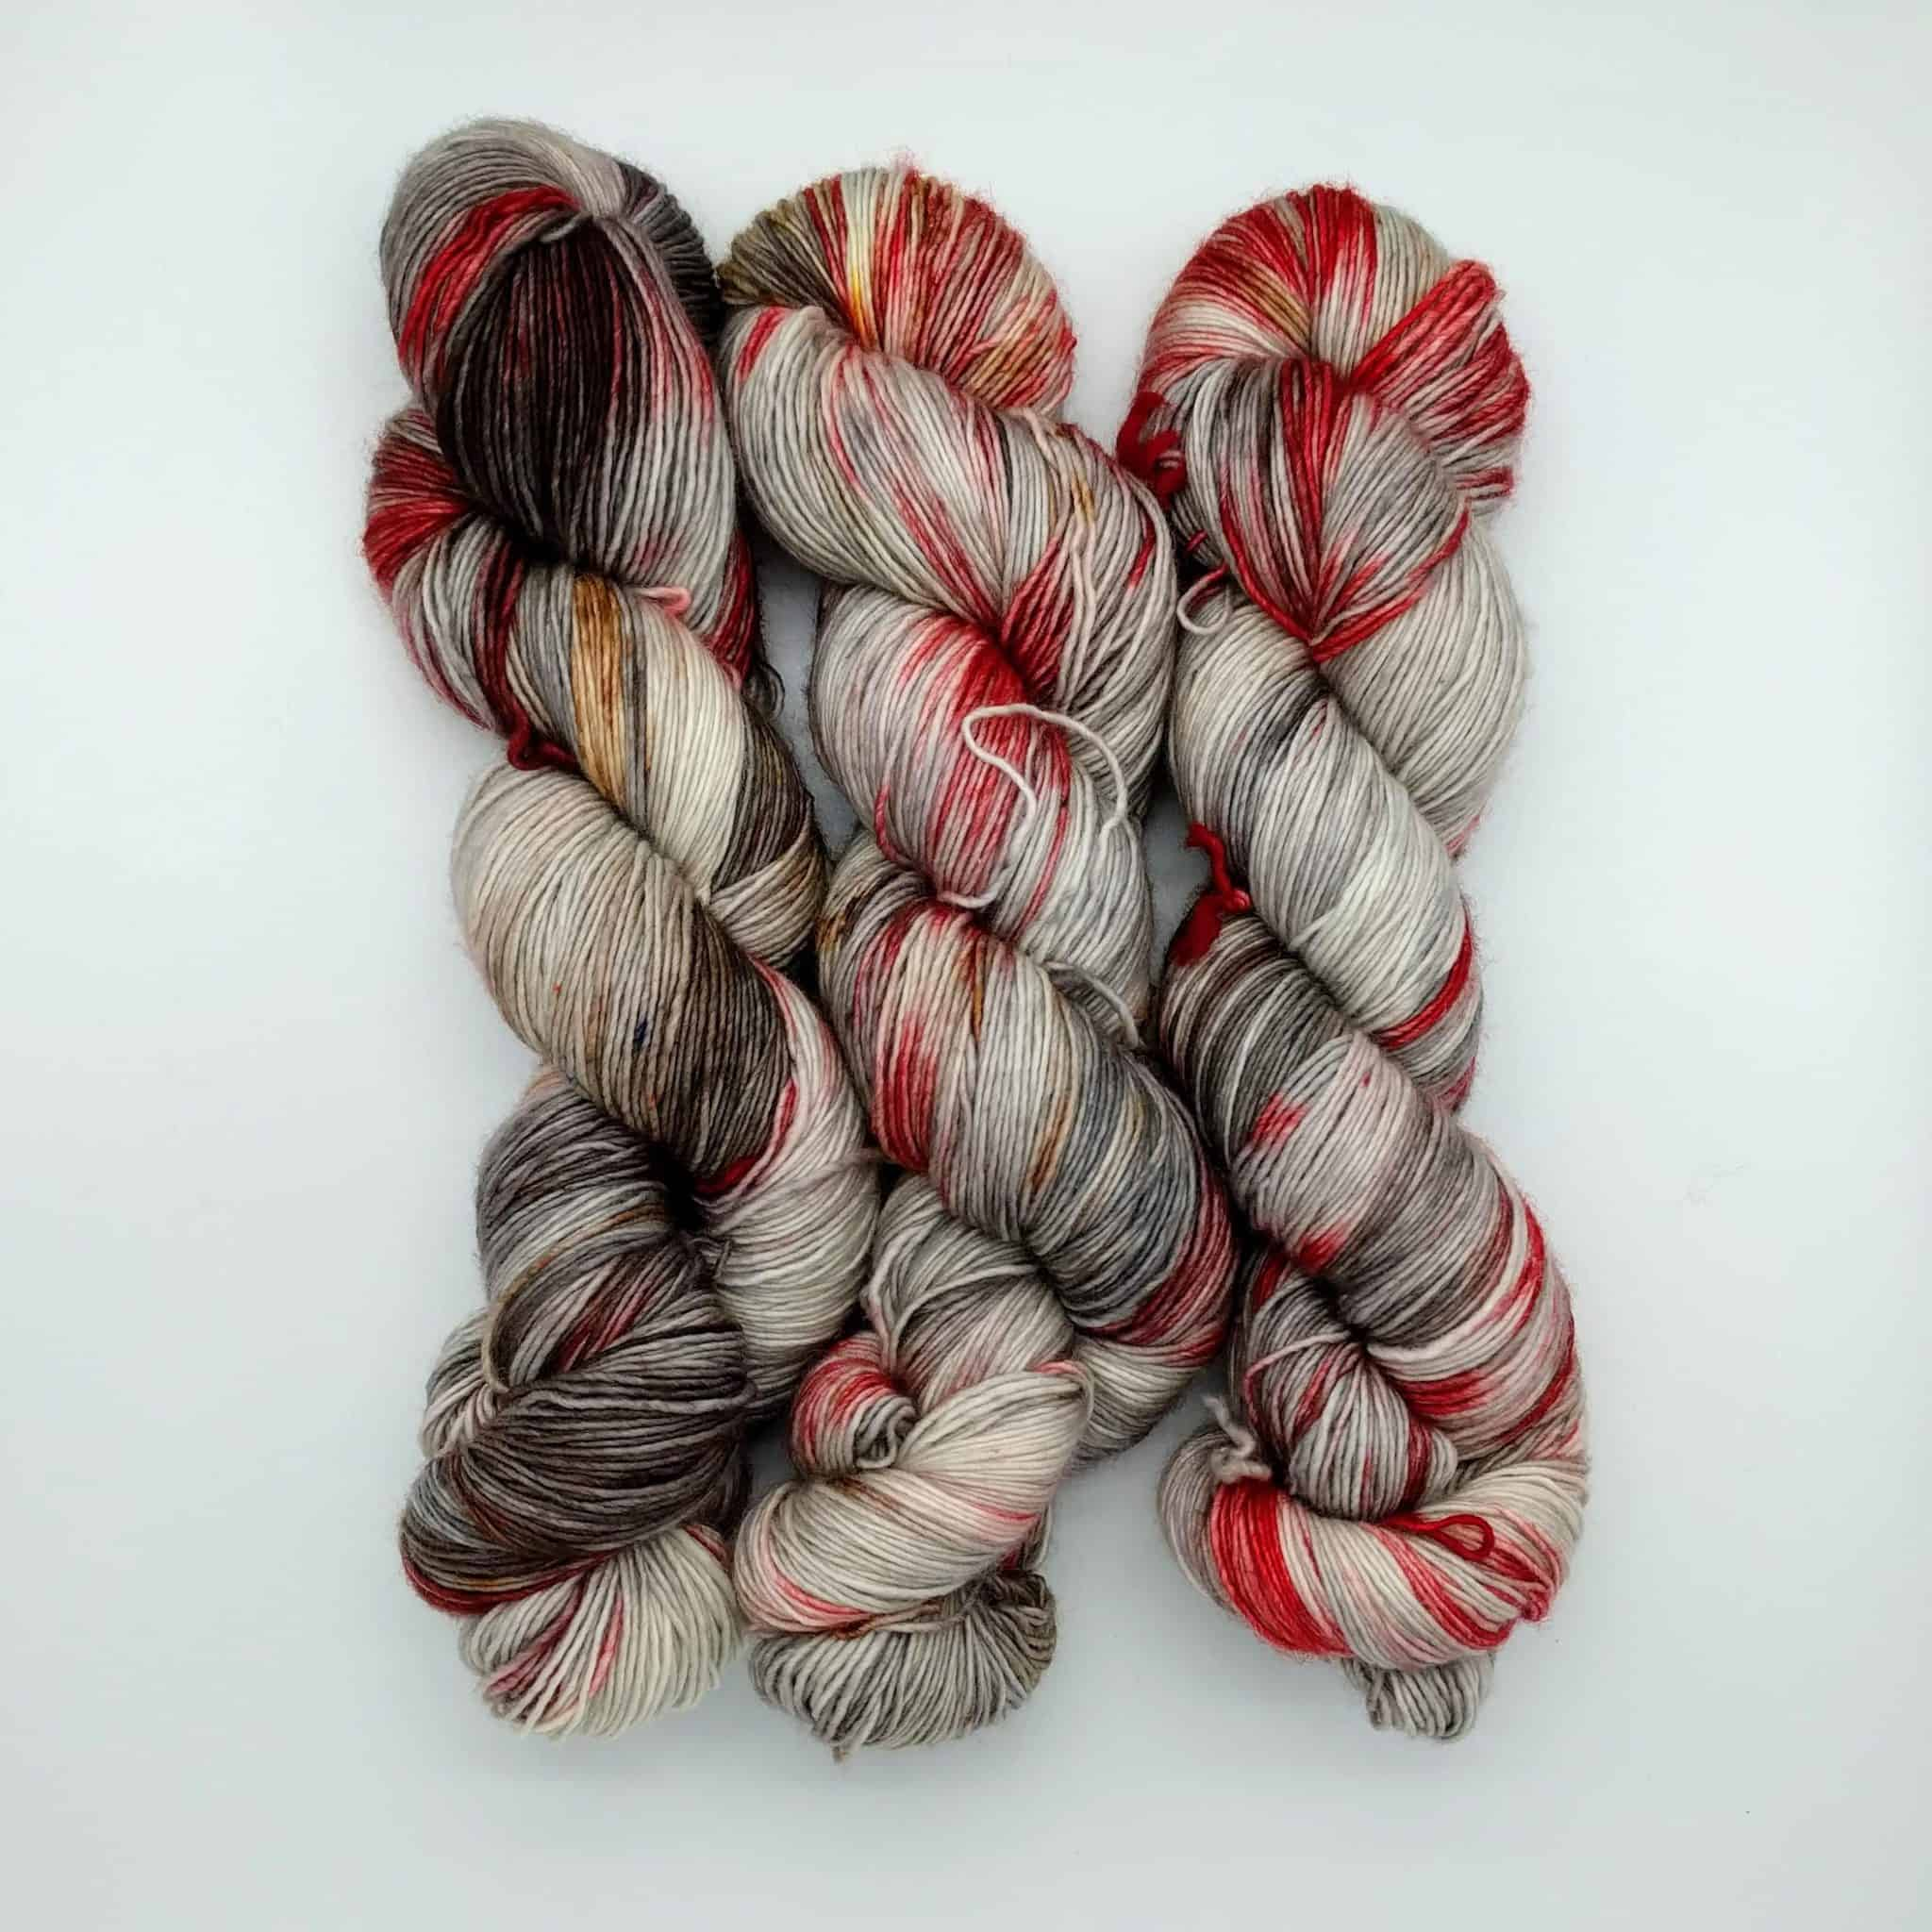 Red, black and gray yarn.